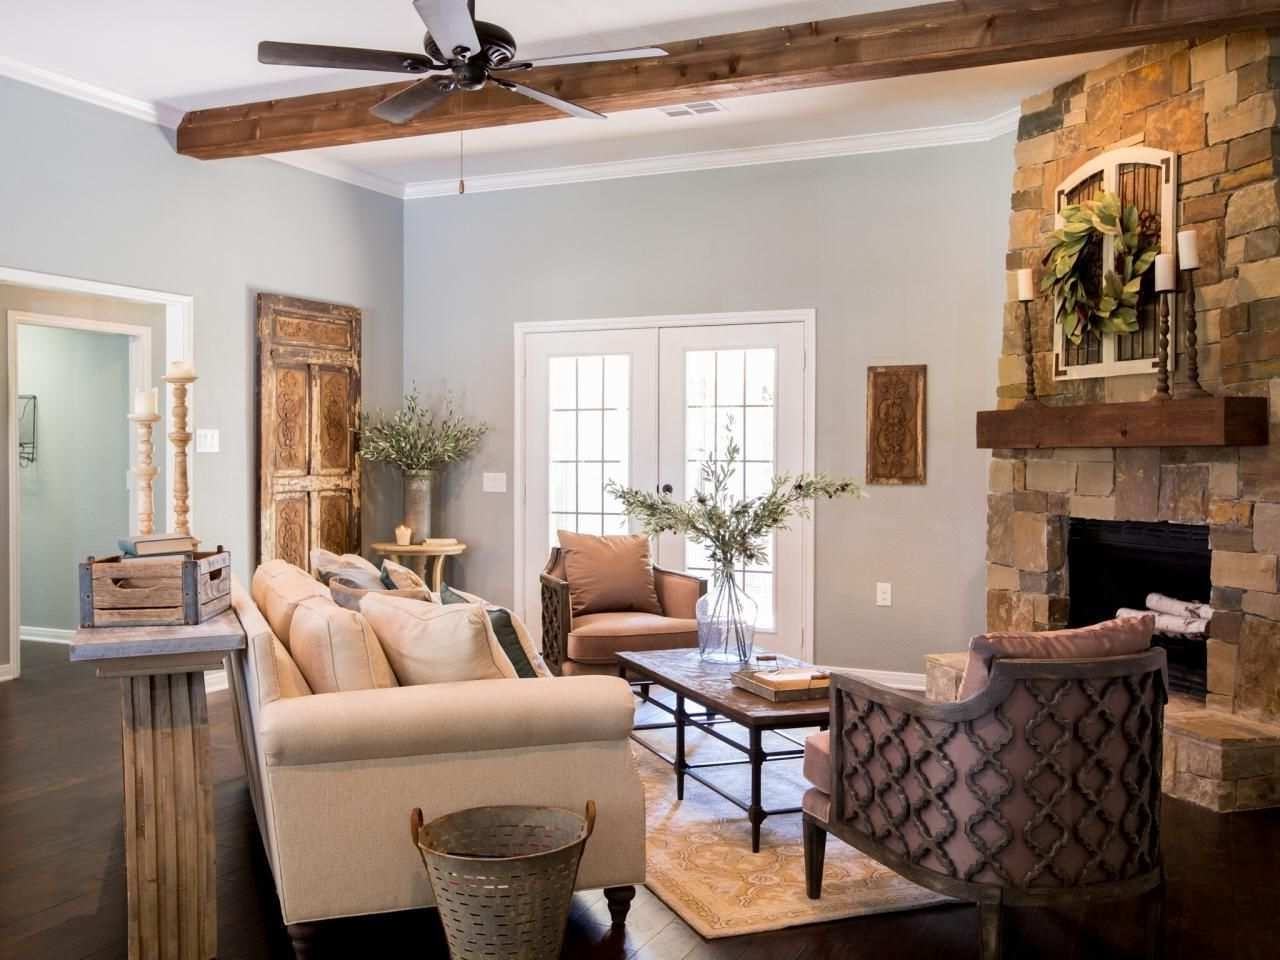 Joanna Gaines Ceiling Fans Beautiful Fixer Upper Yours Mine Ours And For Favorite Joanna Gaines Outdoor Ceiling Fans (Gallery 6 of 20)